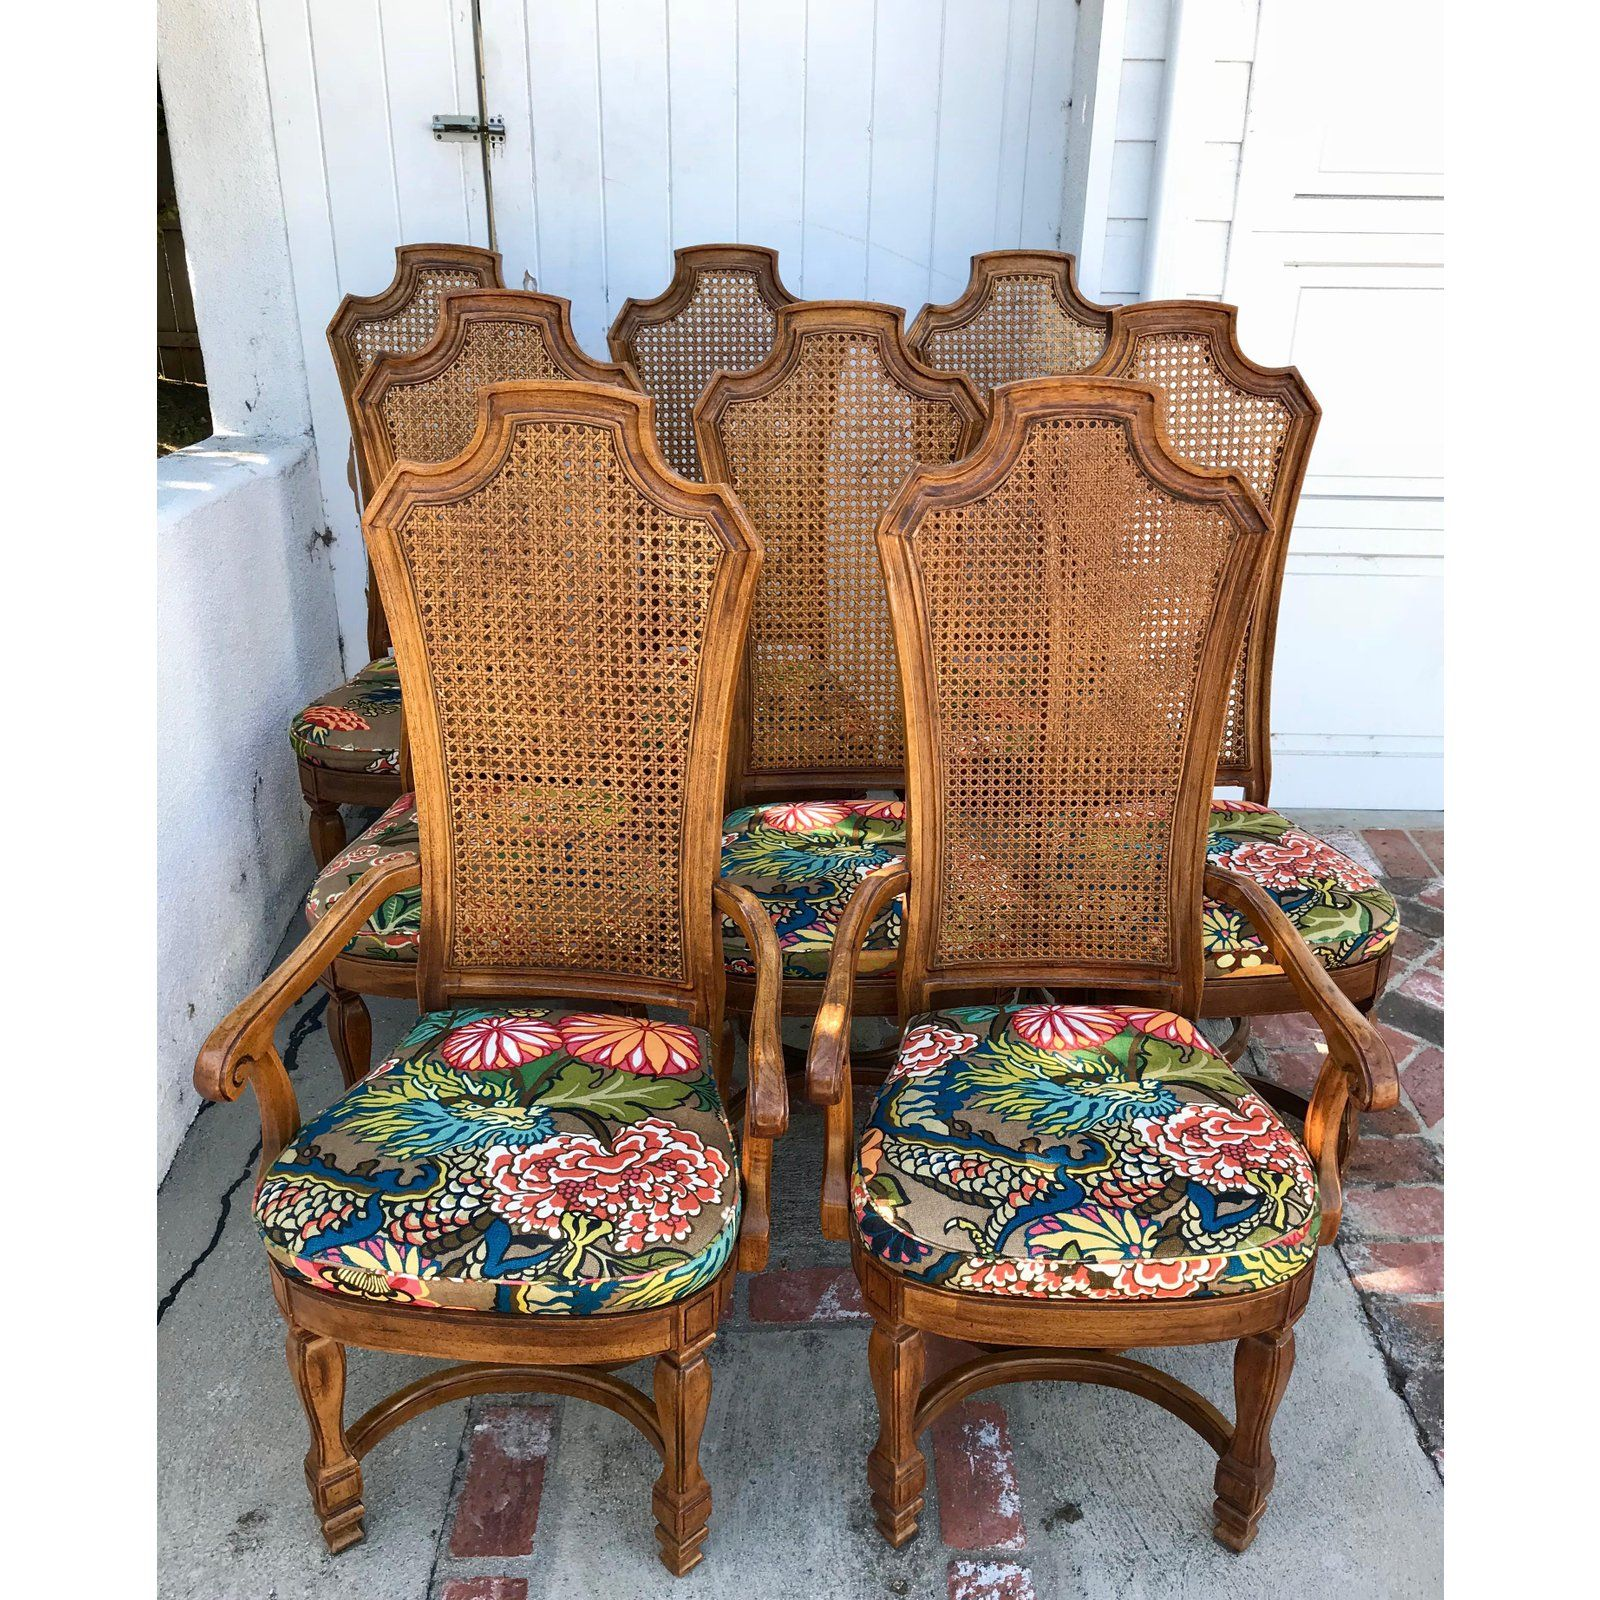 1970s Vintage Cane Back Dining Chairs Set Of 8 With Schumacher Fabric Chiang Mai Pattern Cane Dining Chairs Chair Dining Chair Set